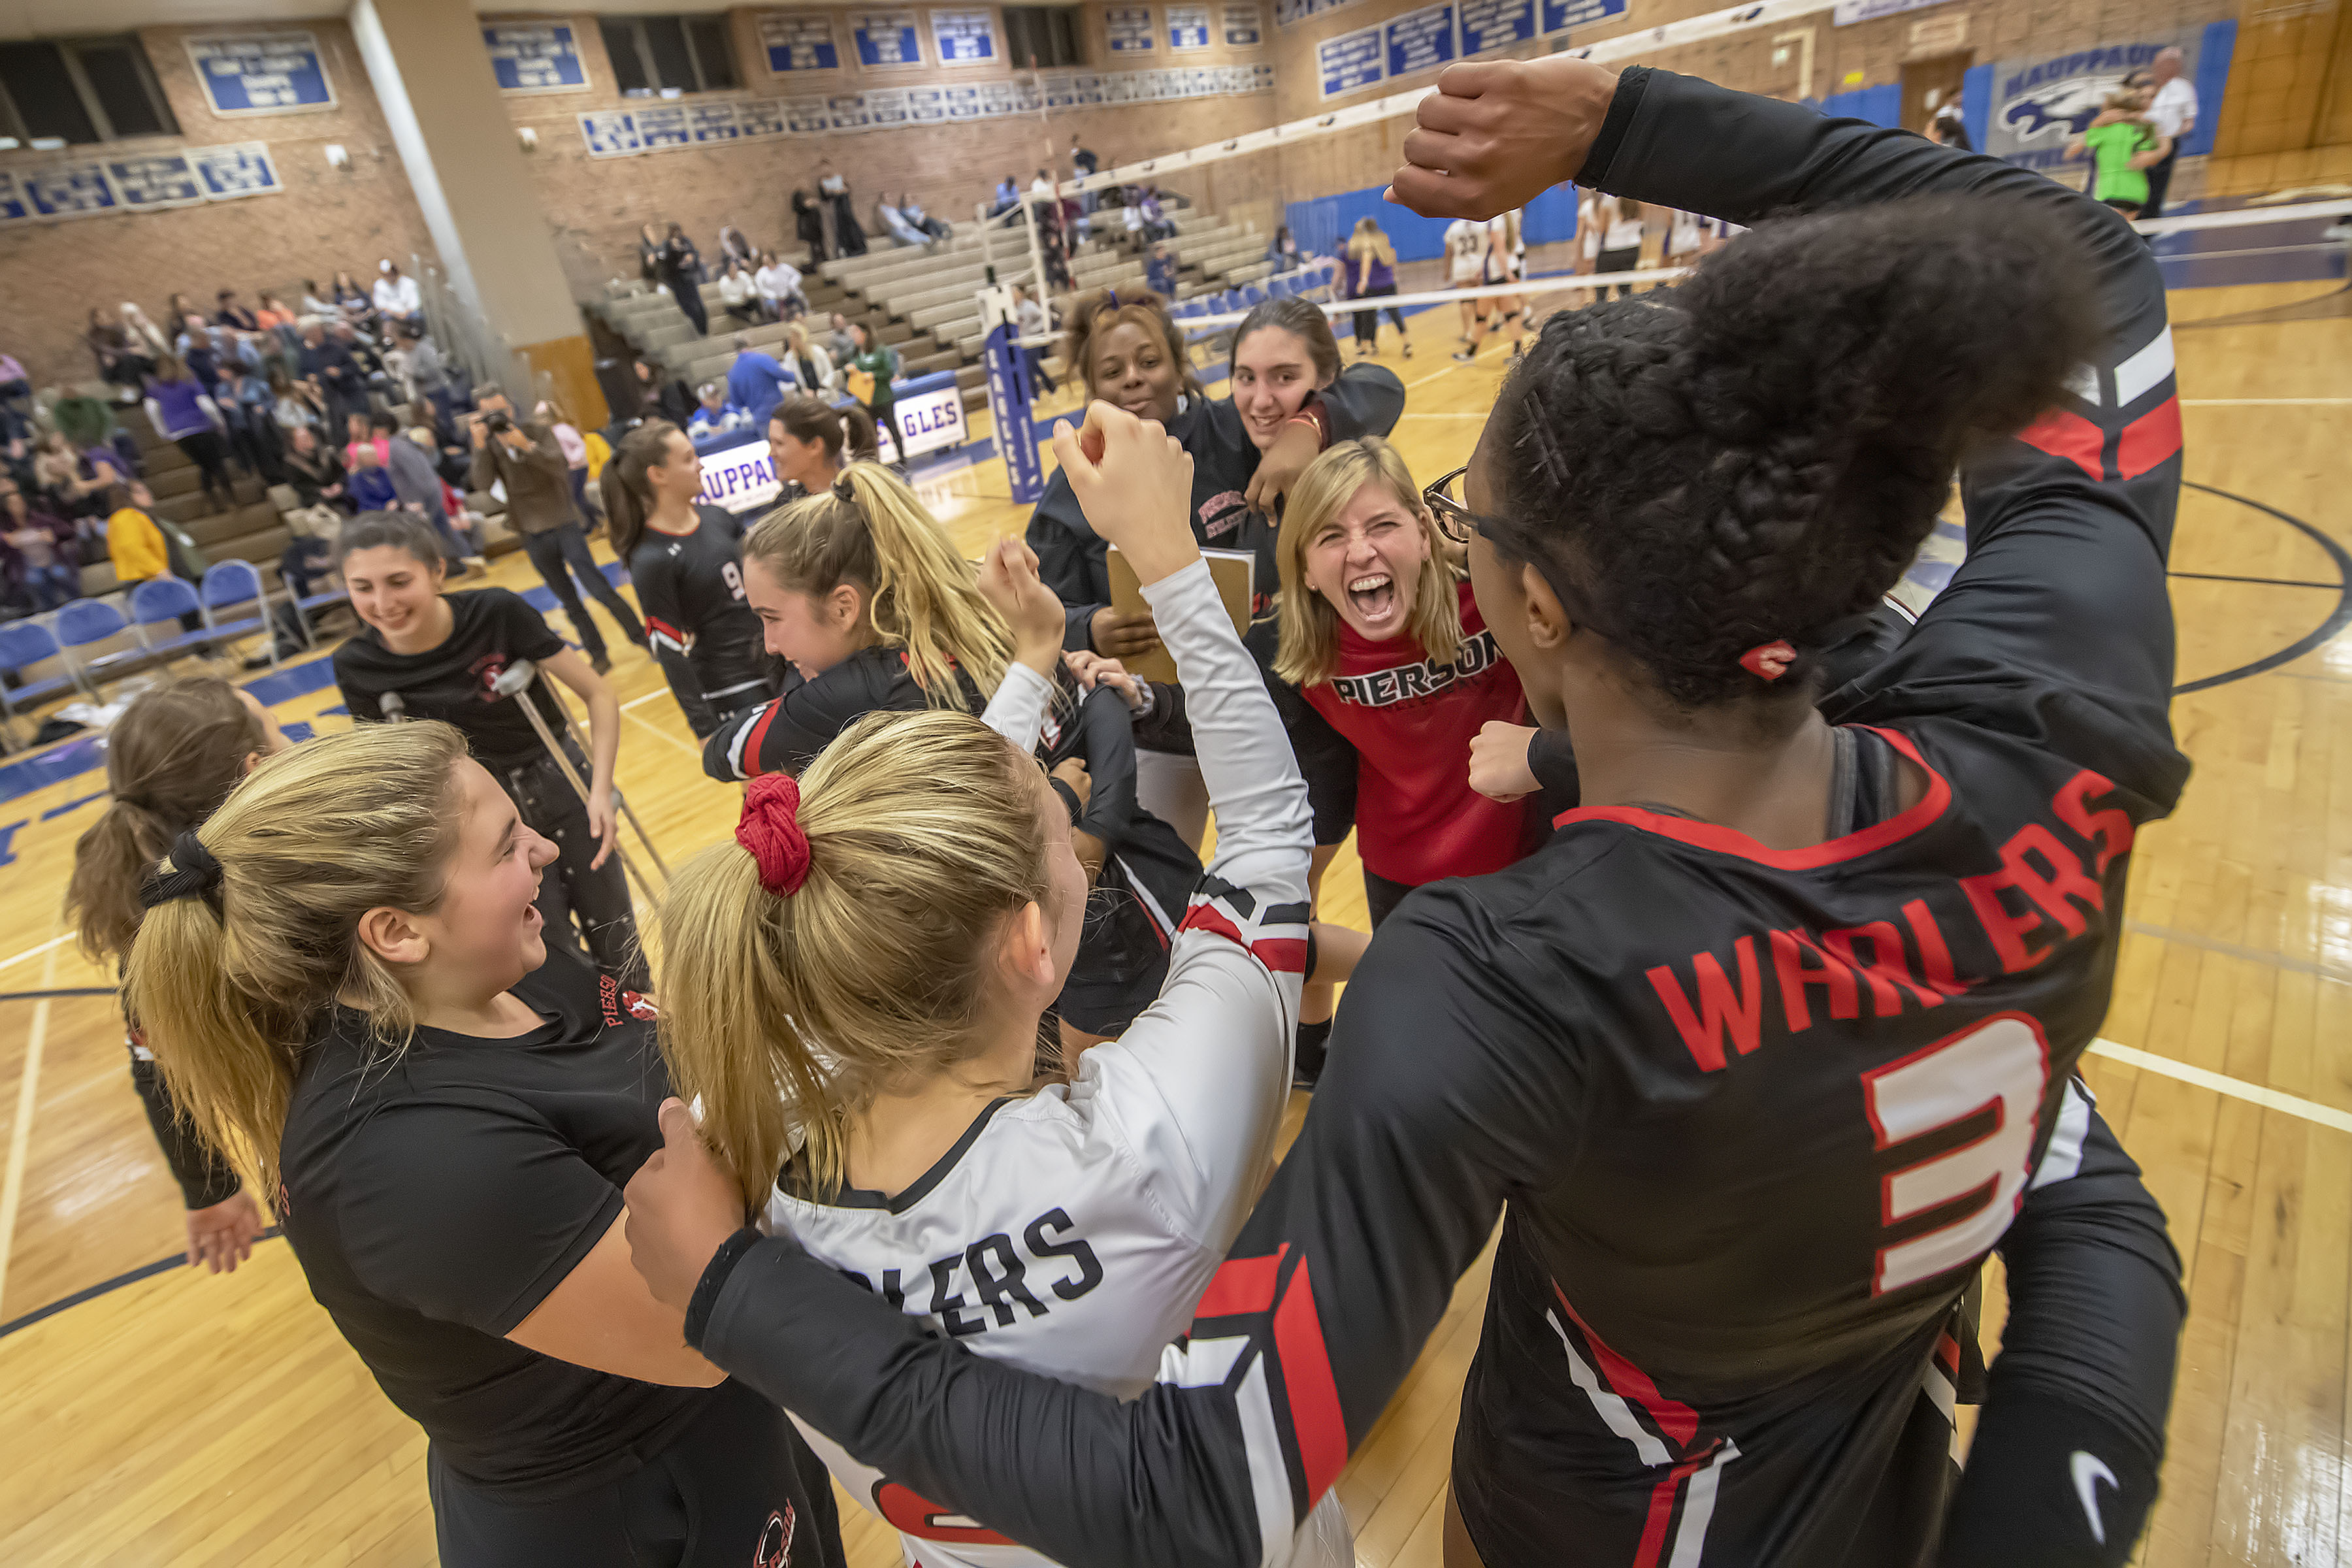 Pierson coach Donna Fisher, at center, celebrates with her team after the Lady Whalers defeated the Oyster Bay Lady Baymen to win the Long Island Class C Volleyball Championship at Hauppauge High School on Saturday night.